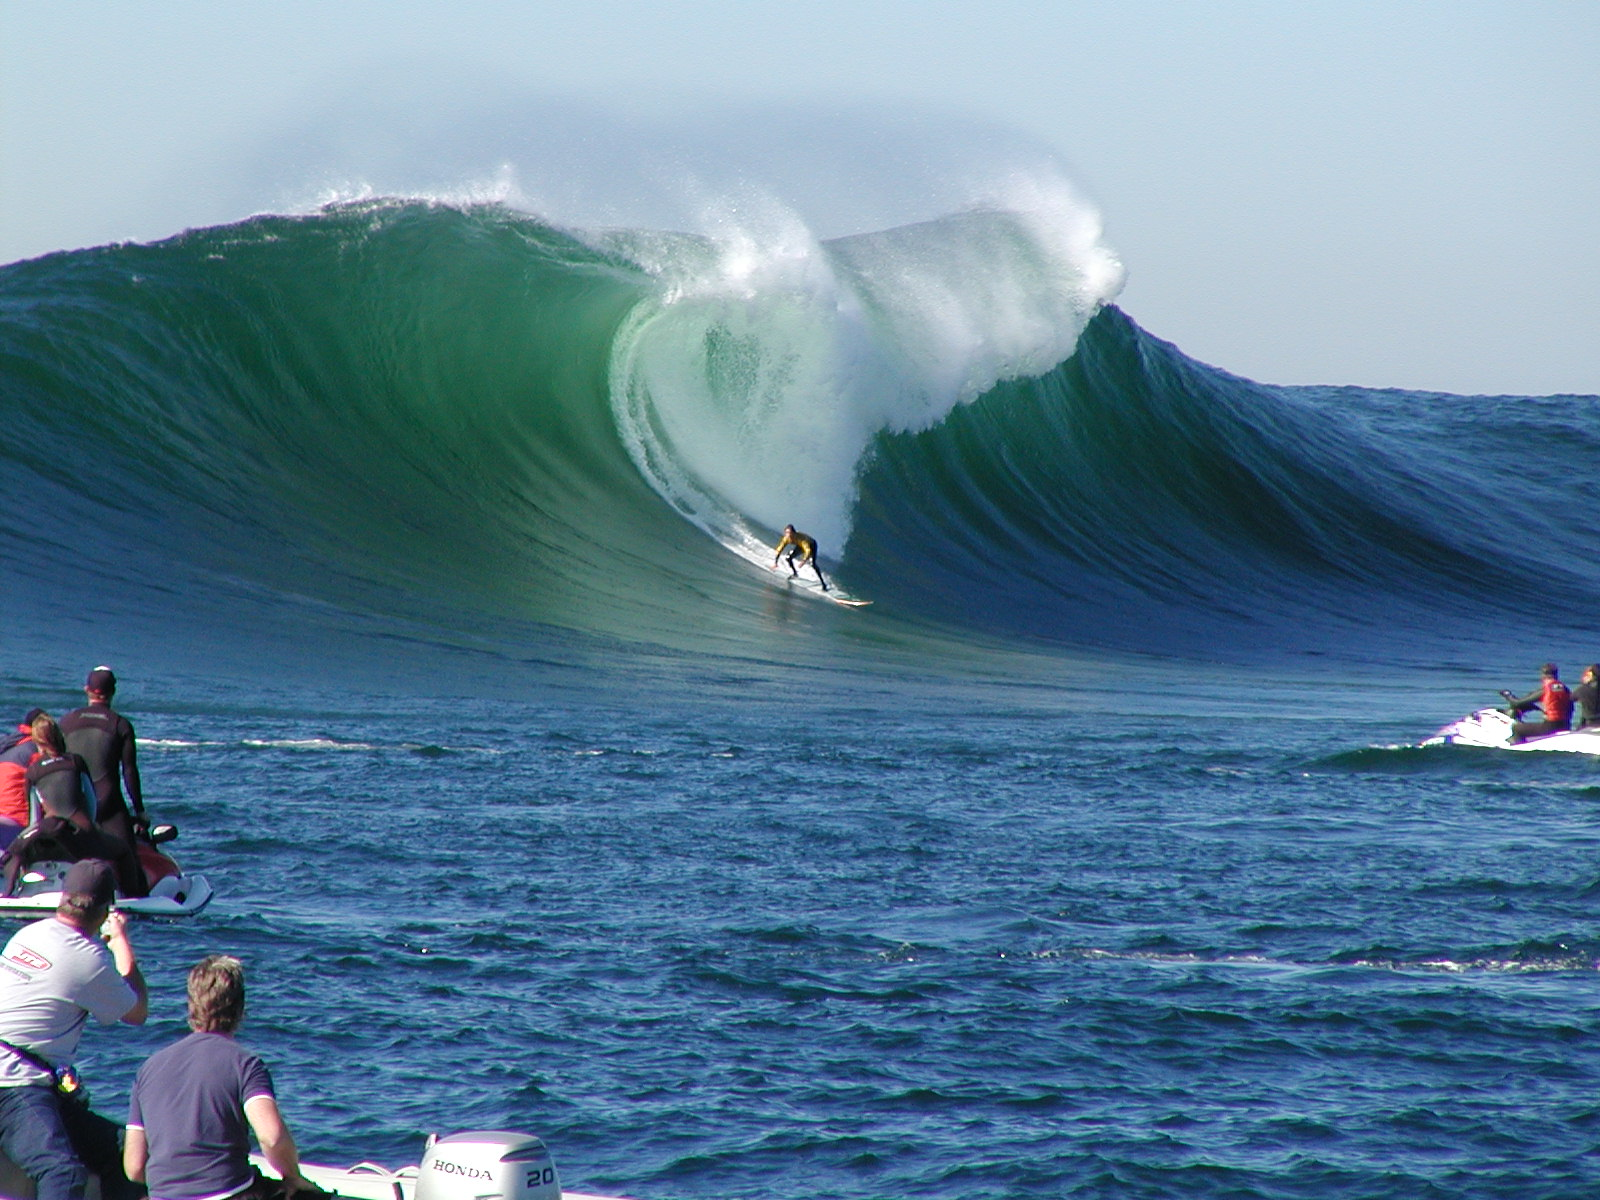 PHOTOS - BIG BIG WAVE SURFING : EXTREME - XarJ Blog and ...